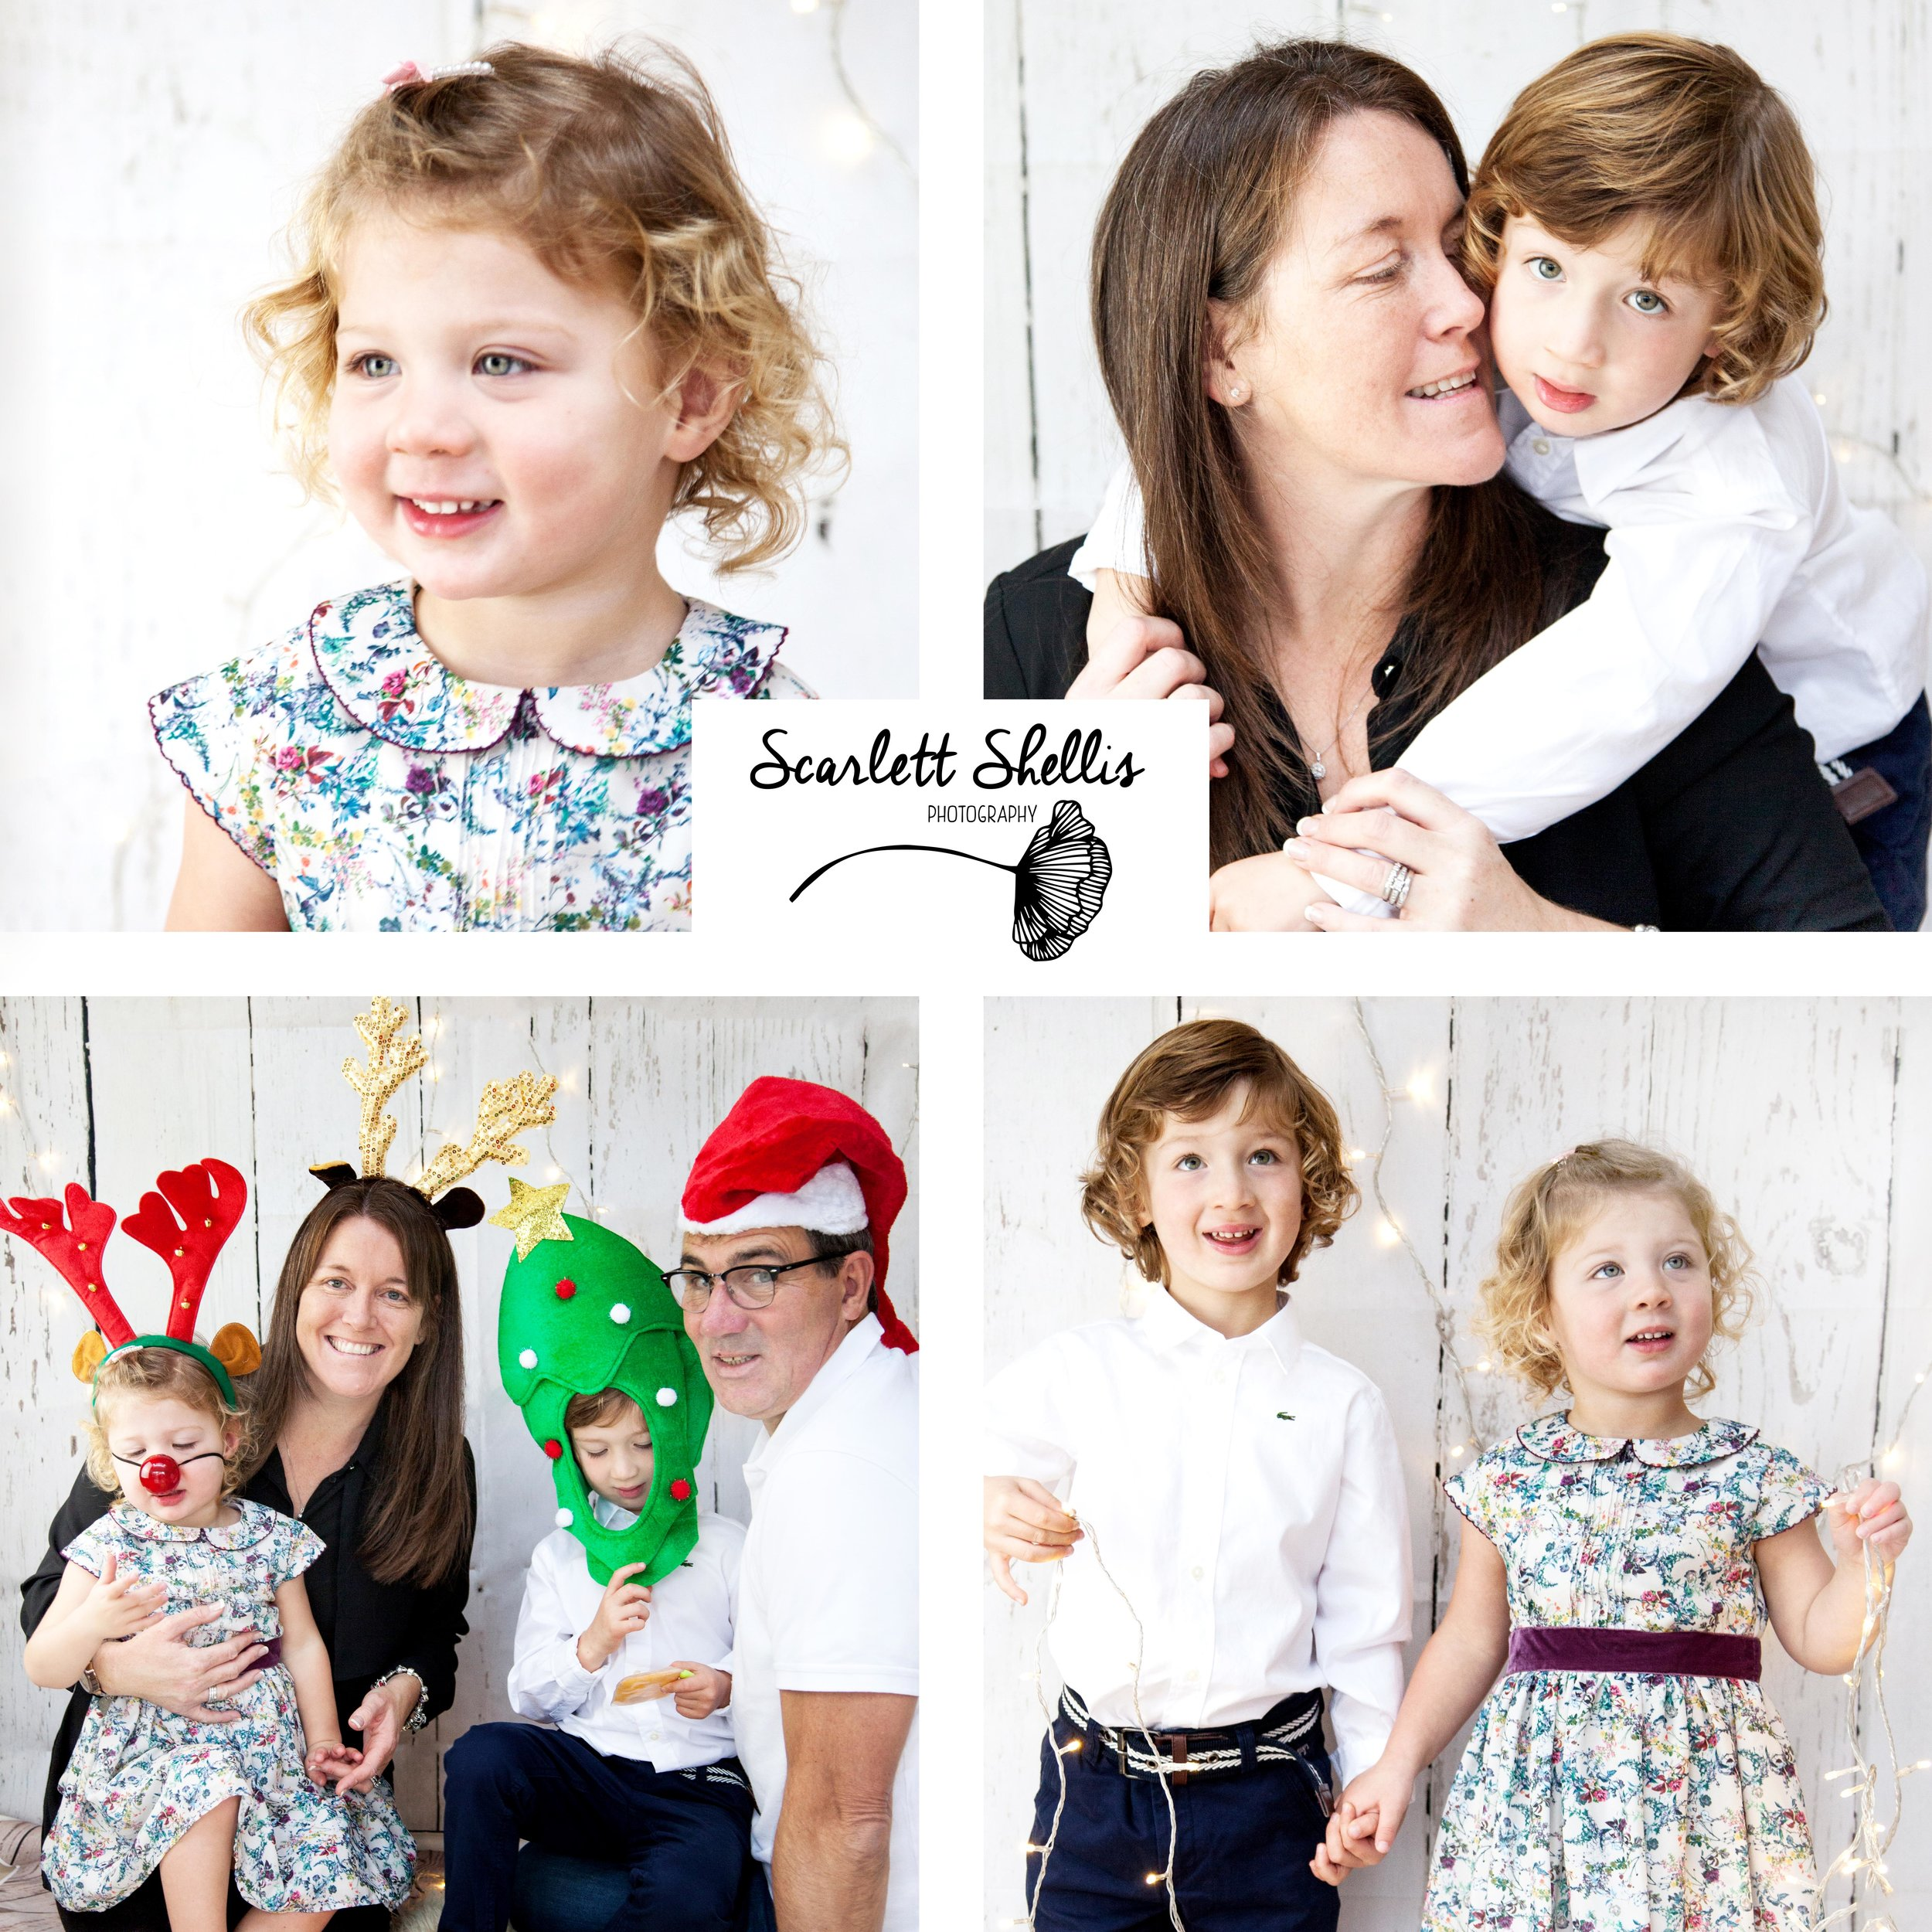 A little collage I made from my Christmas shoot with Lorna and her beautiful family.   Gabriel and Eleanor know me well enough now to have cuddles and playtime in between taking photos! Always a pleasure to do a photoshoot with them all.